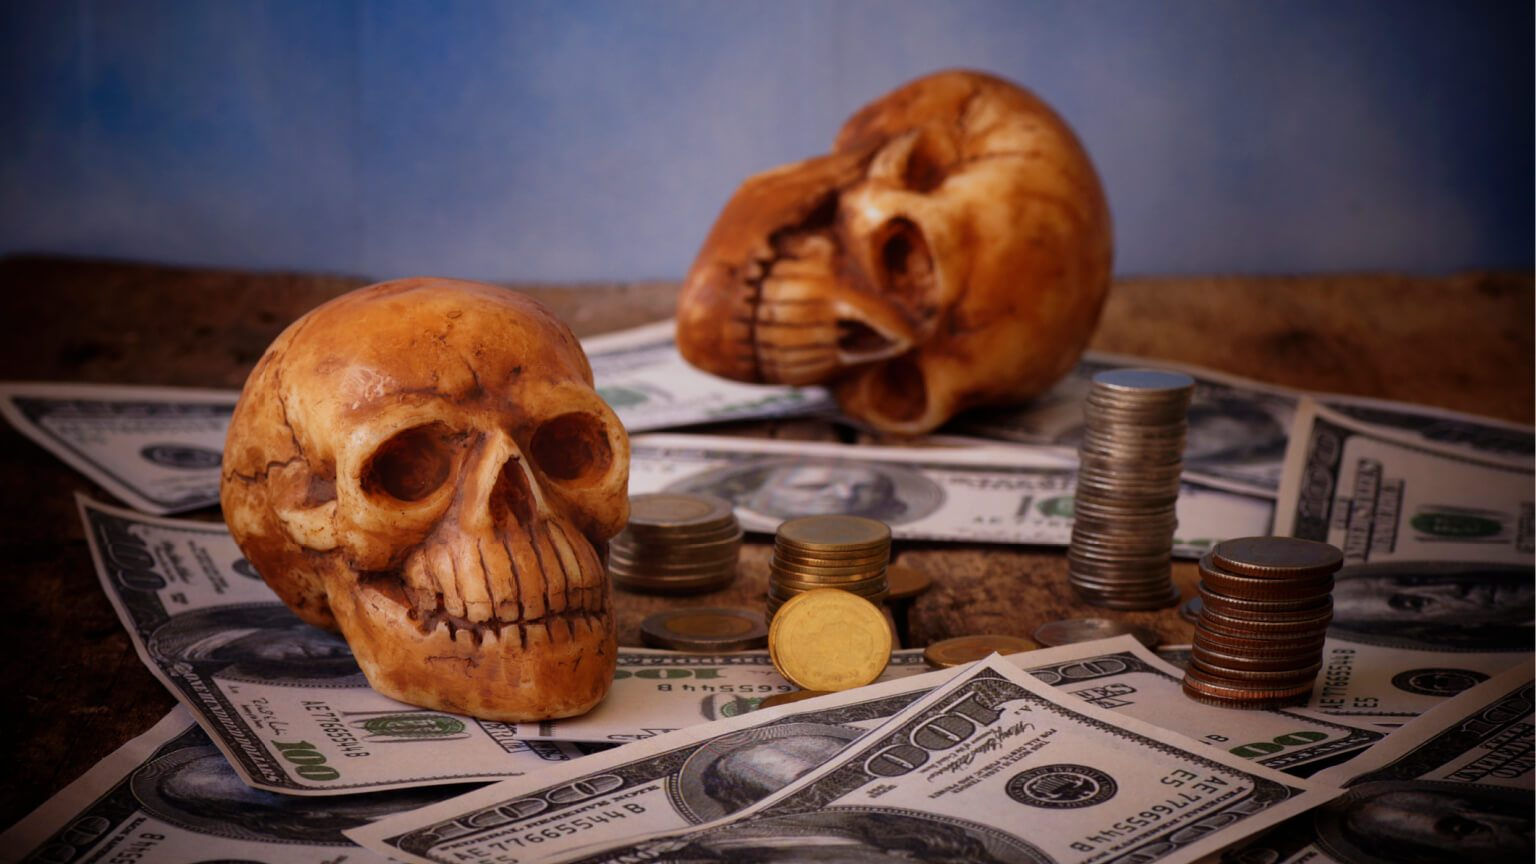 picture of fake skulls on top of 100 dollar bills and stacks of coins